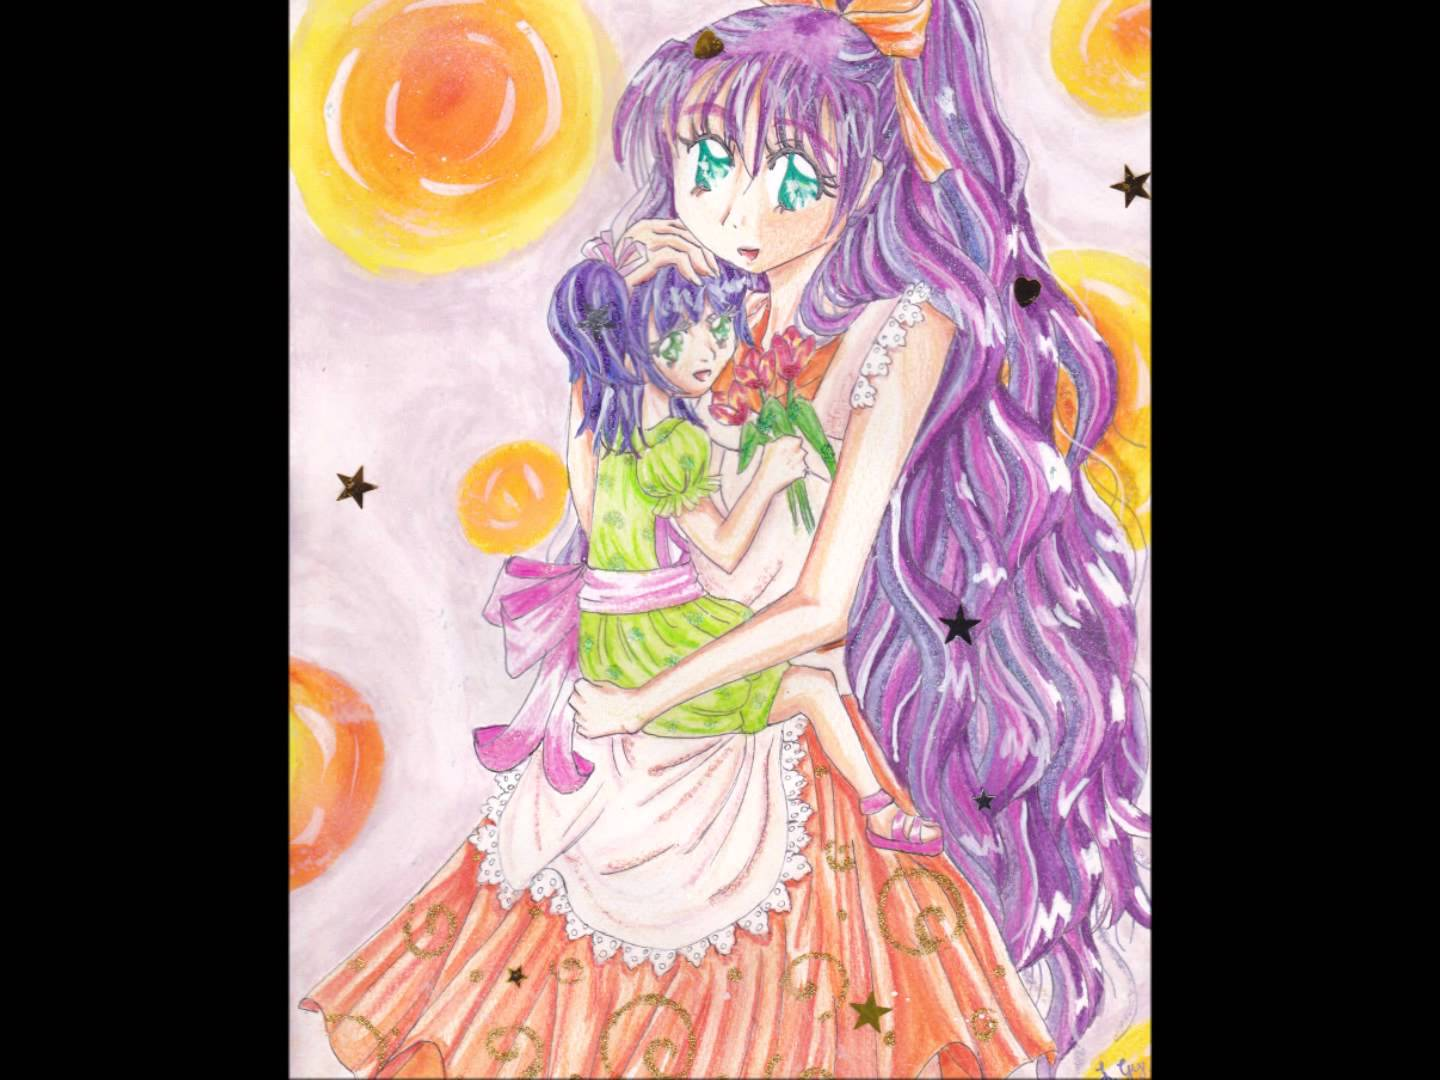 1440x1080 My Anime Drawings 2010 2011 ( I Was 14 Years Old )